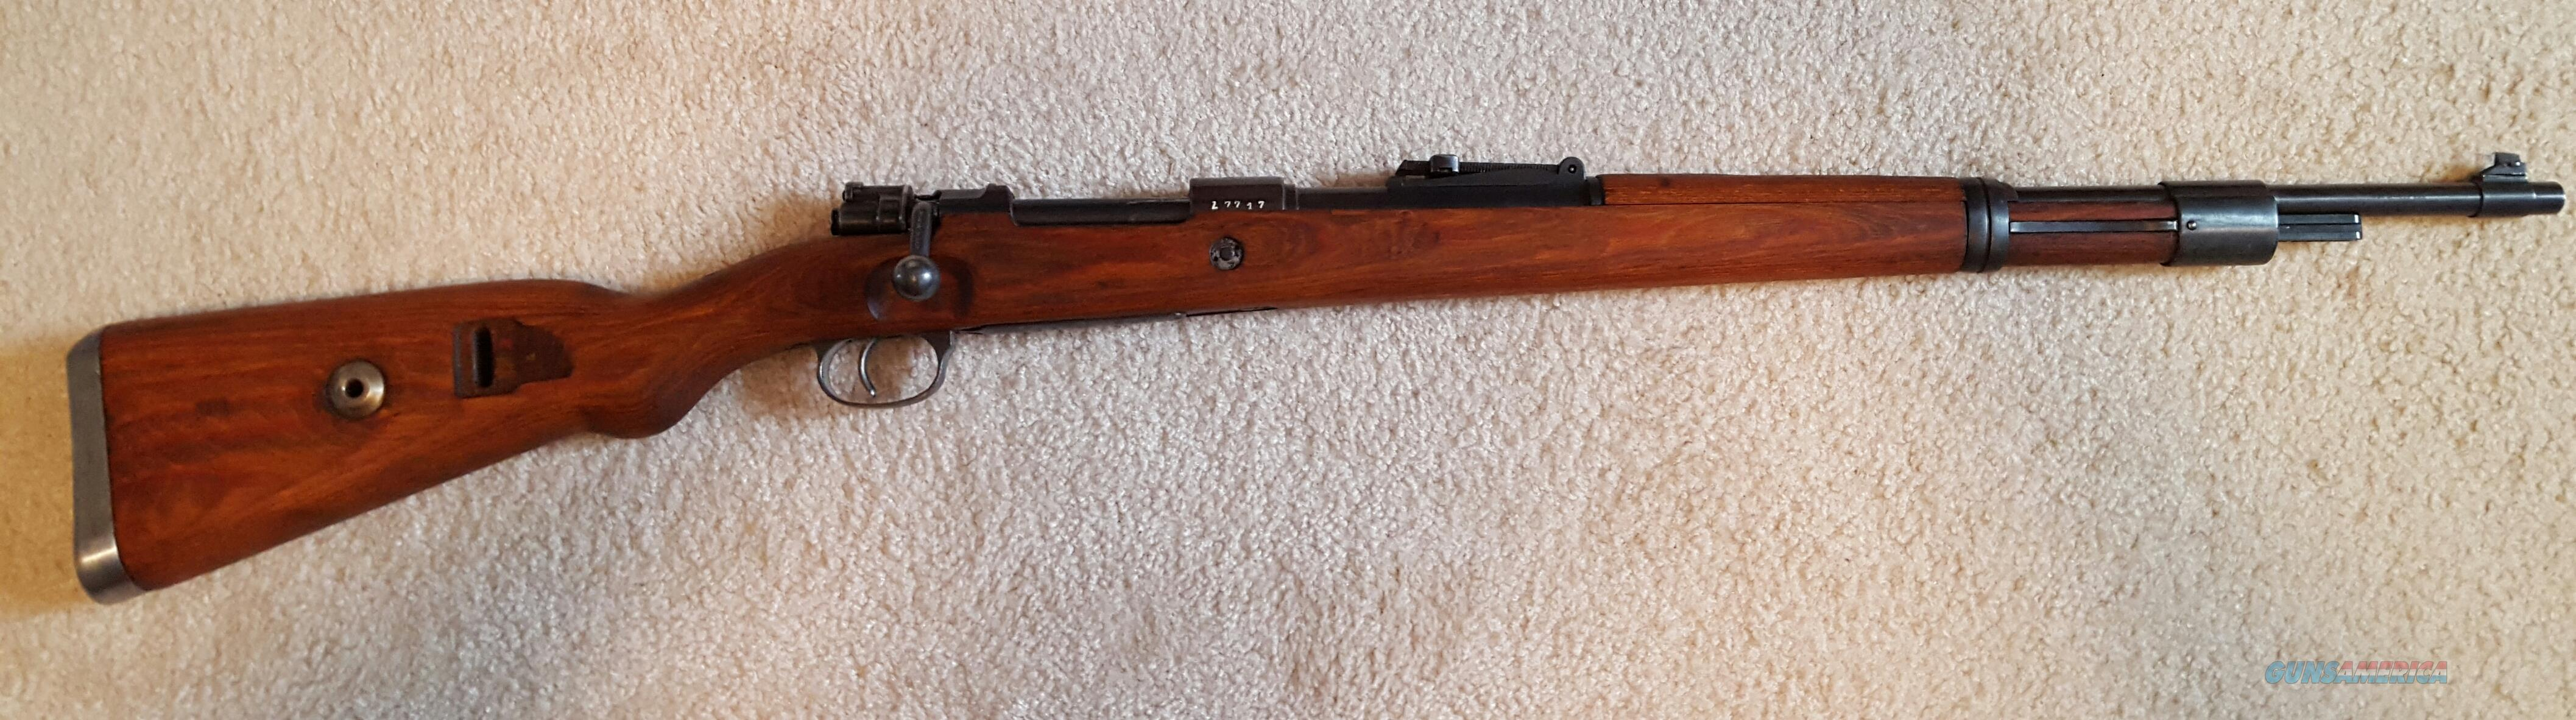 Mauser 98  Guns > Rifles > Mauser Rifles > German